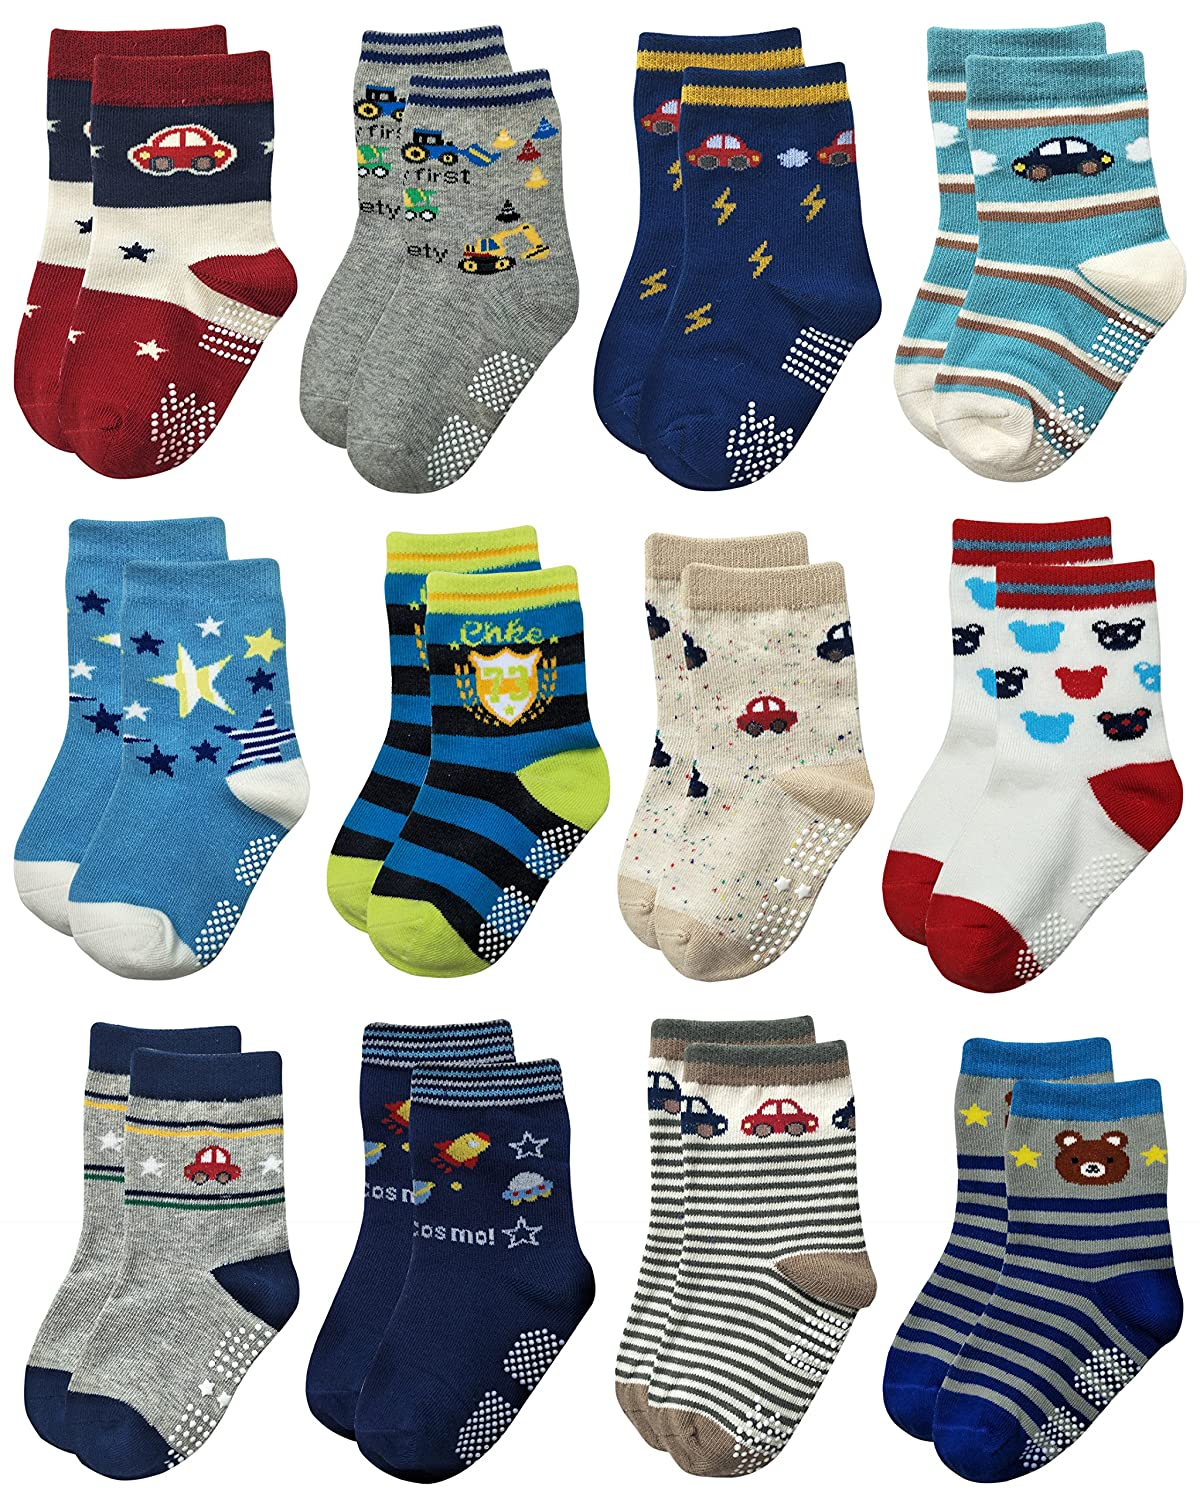 3-9 Months, 12 designs//RB-71218 RATIVE Non Skid Anti Slip Crew Socks With Grips For Baby Toddlers Boys